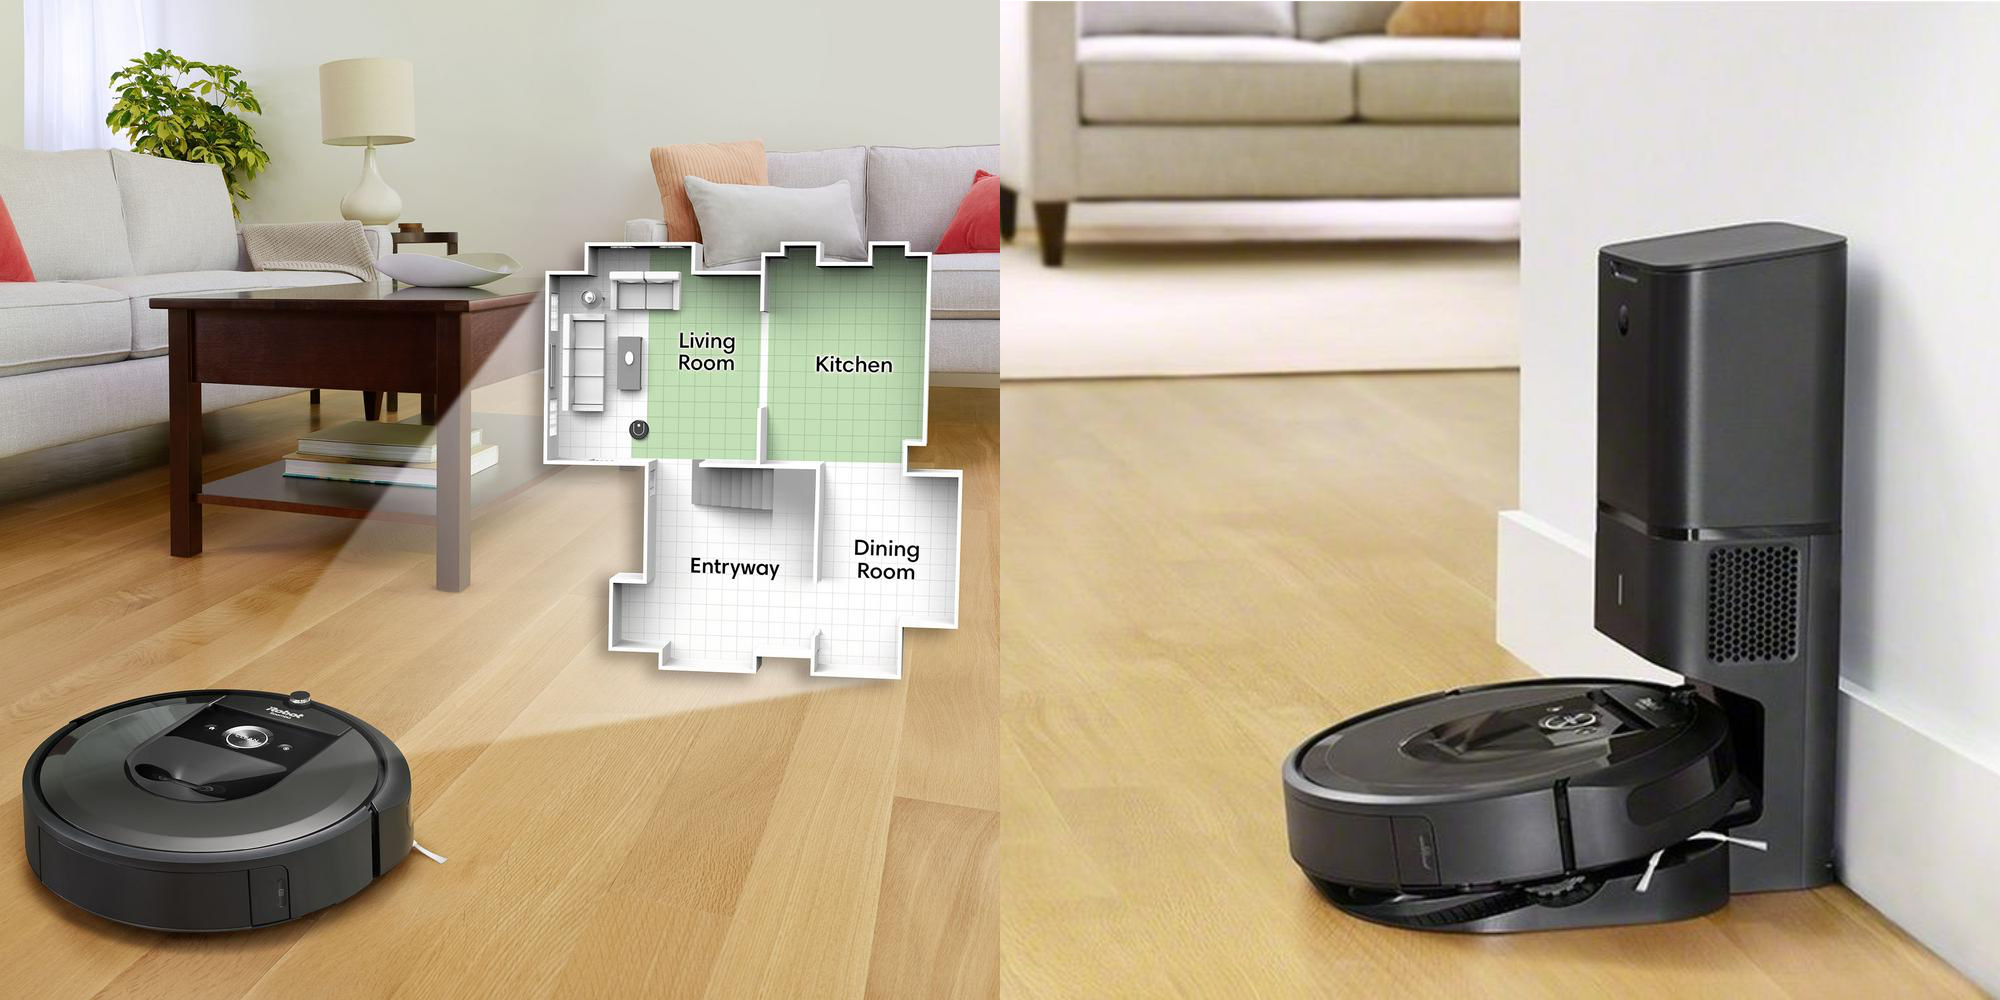 Save 100 On Irobot S Latest Roomba I7 Robot Vacuums At